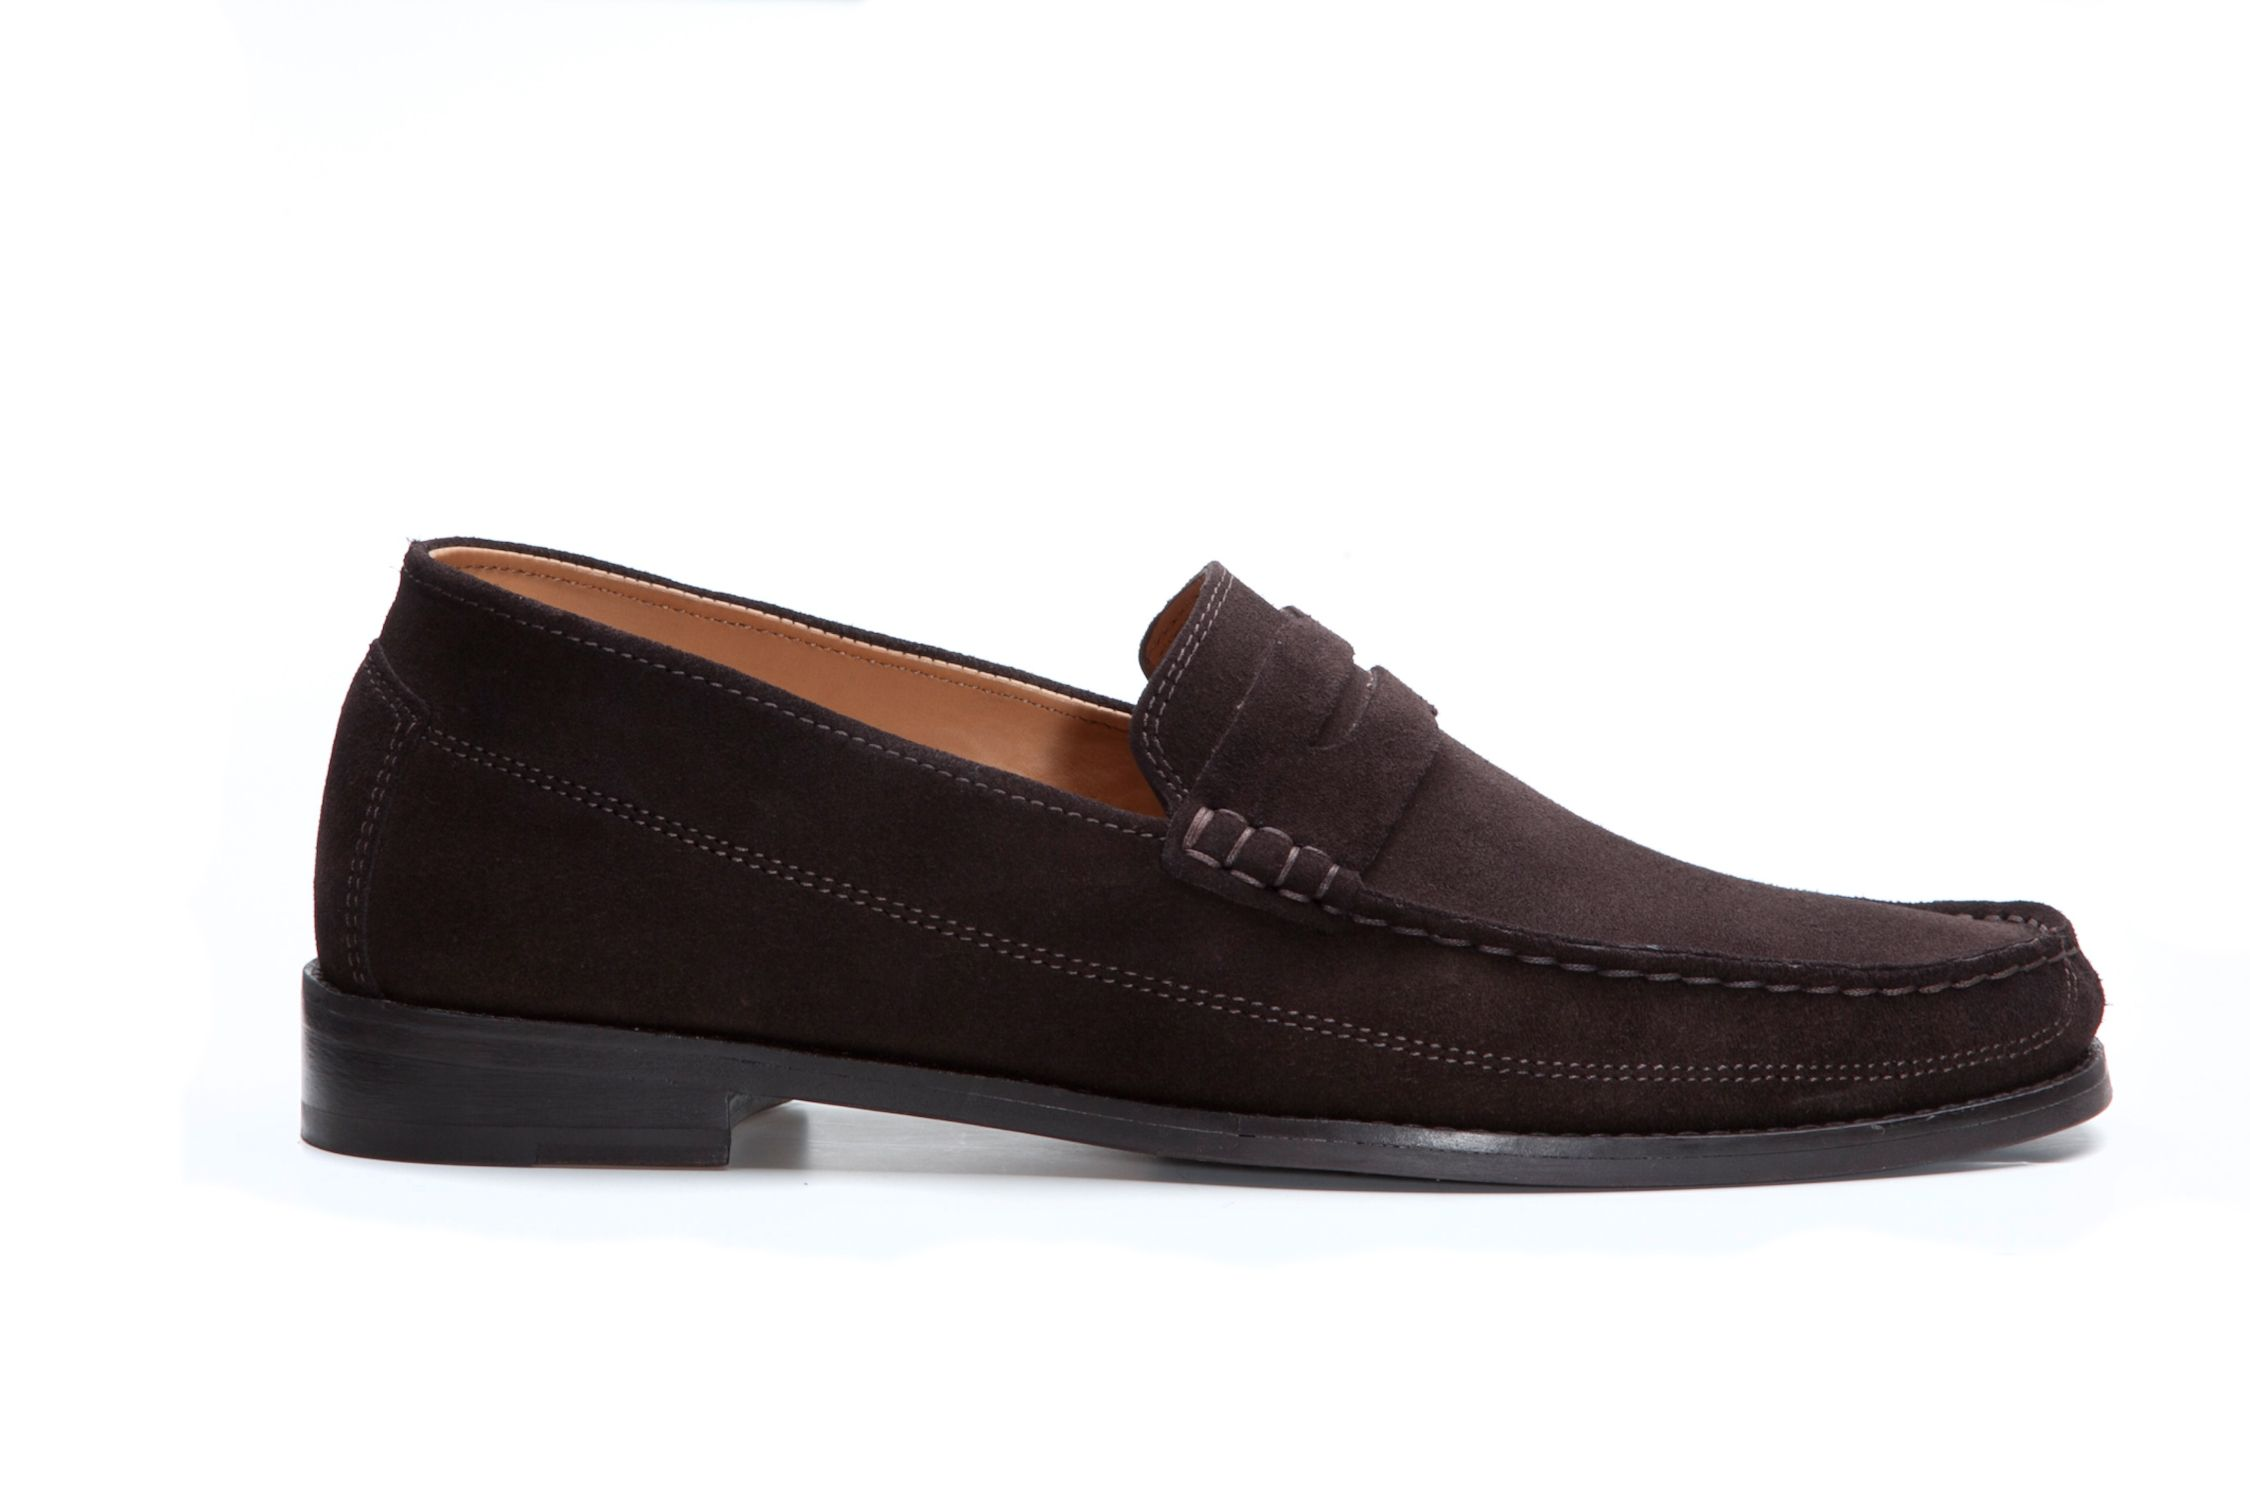 Peregrine brown suede loafers